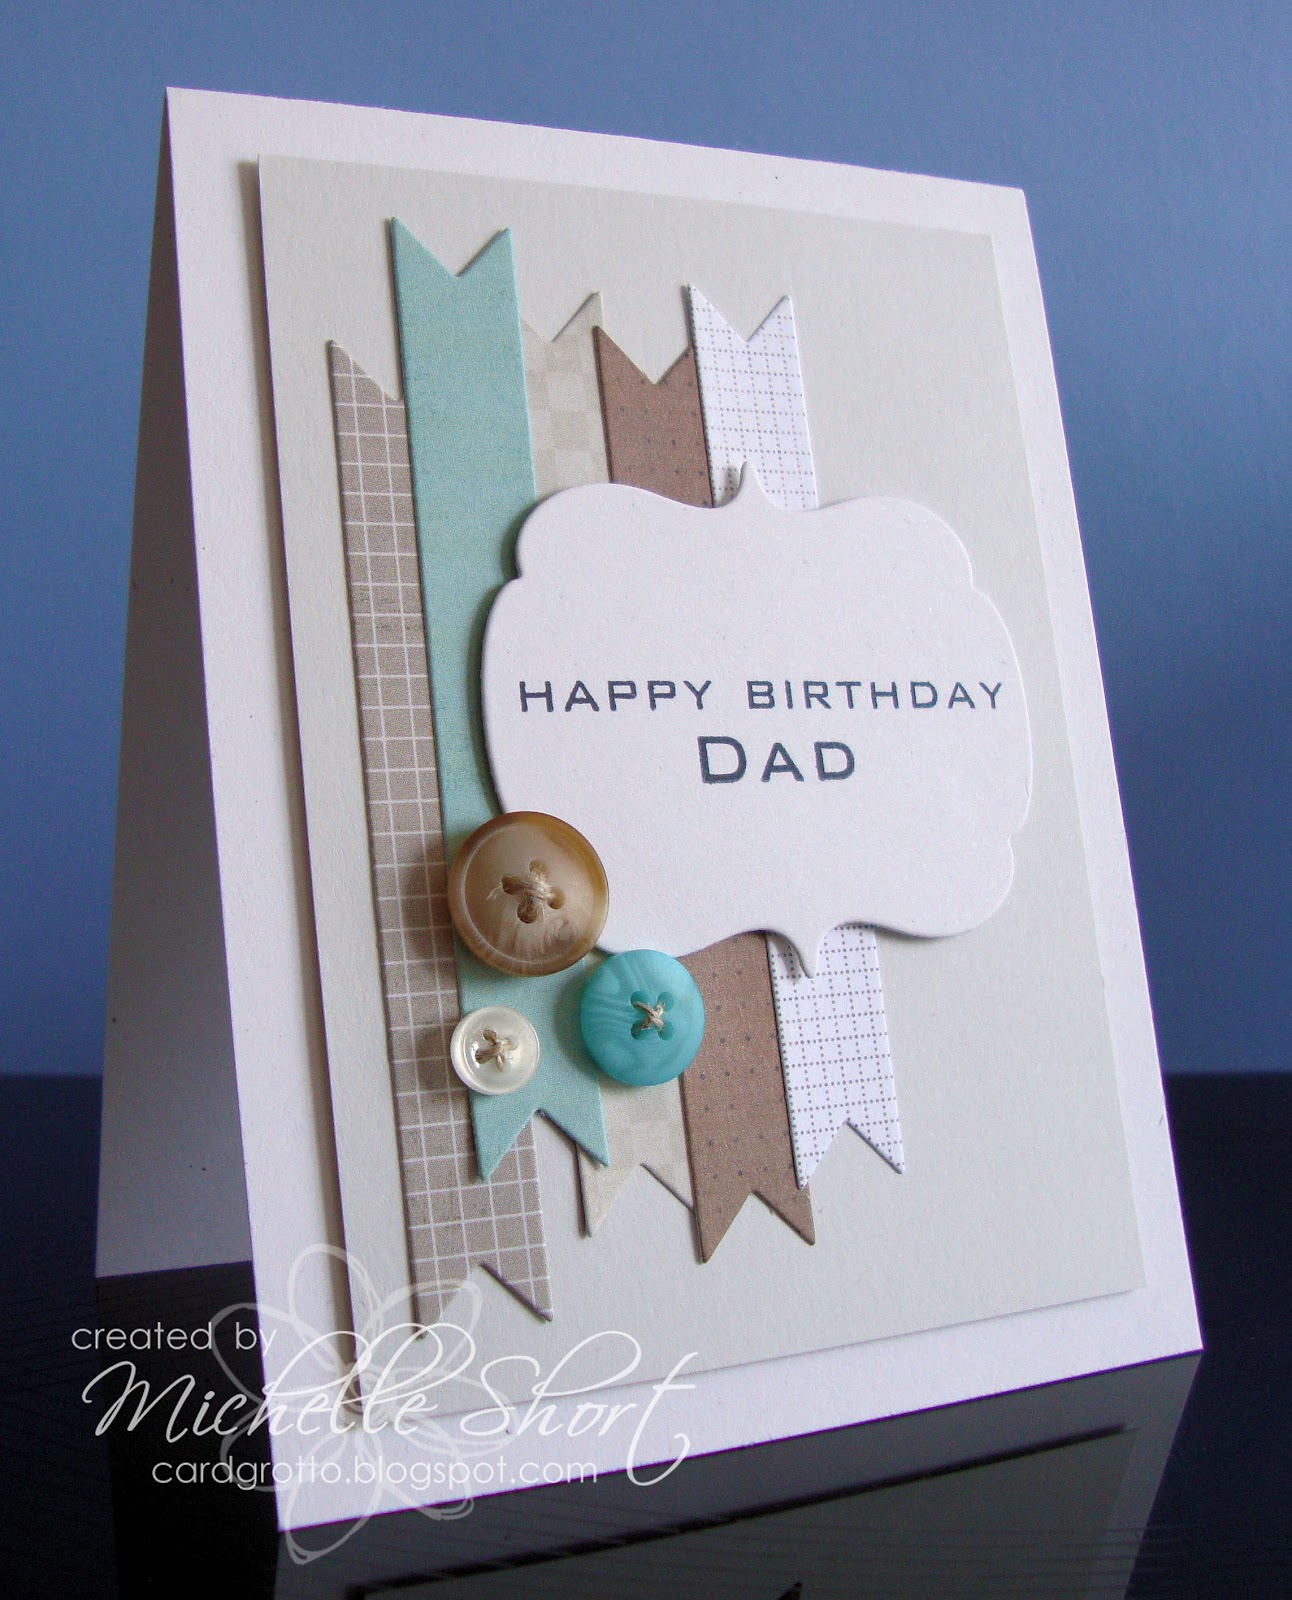 The Card Grotto: Happy Birthday Dad